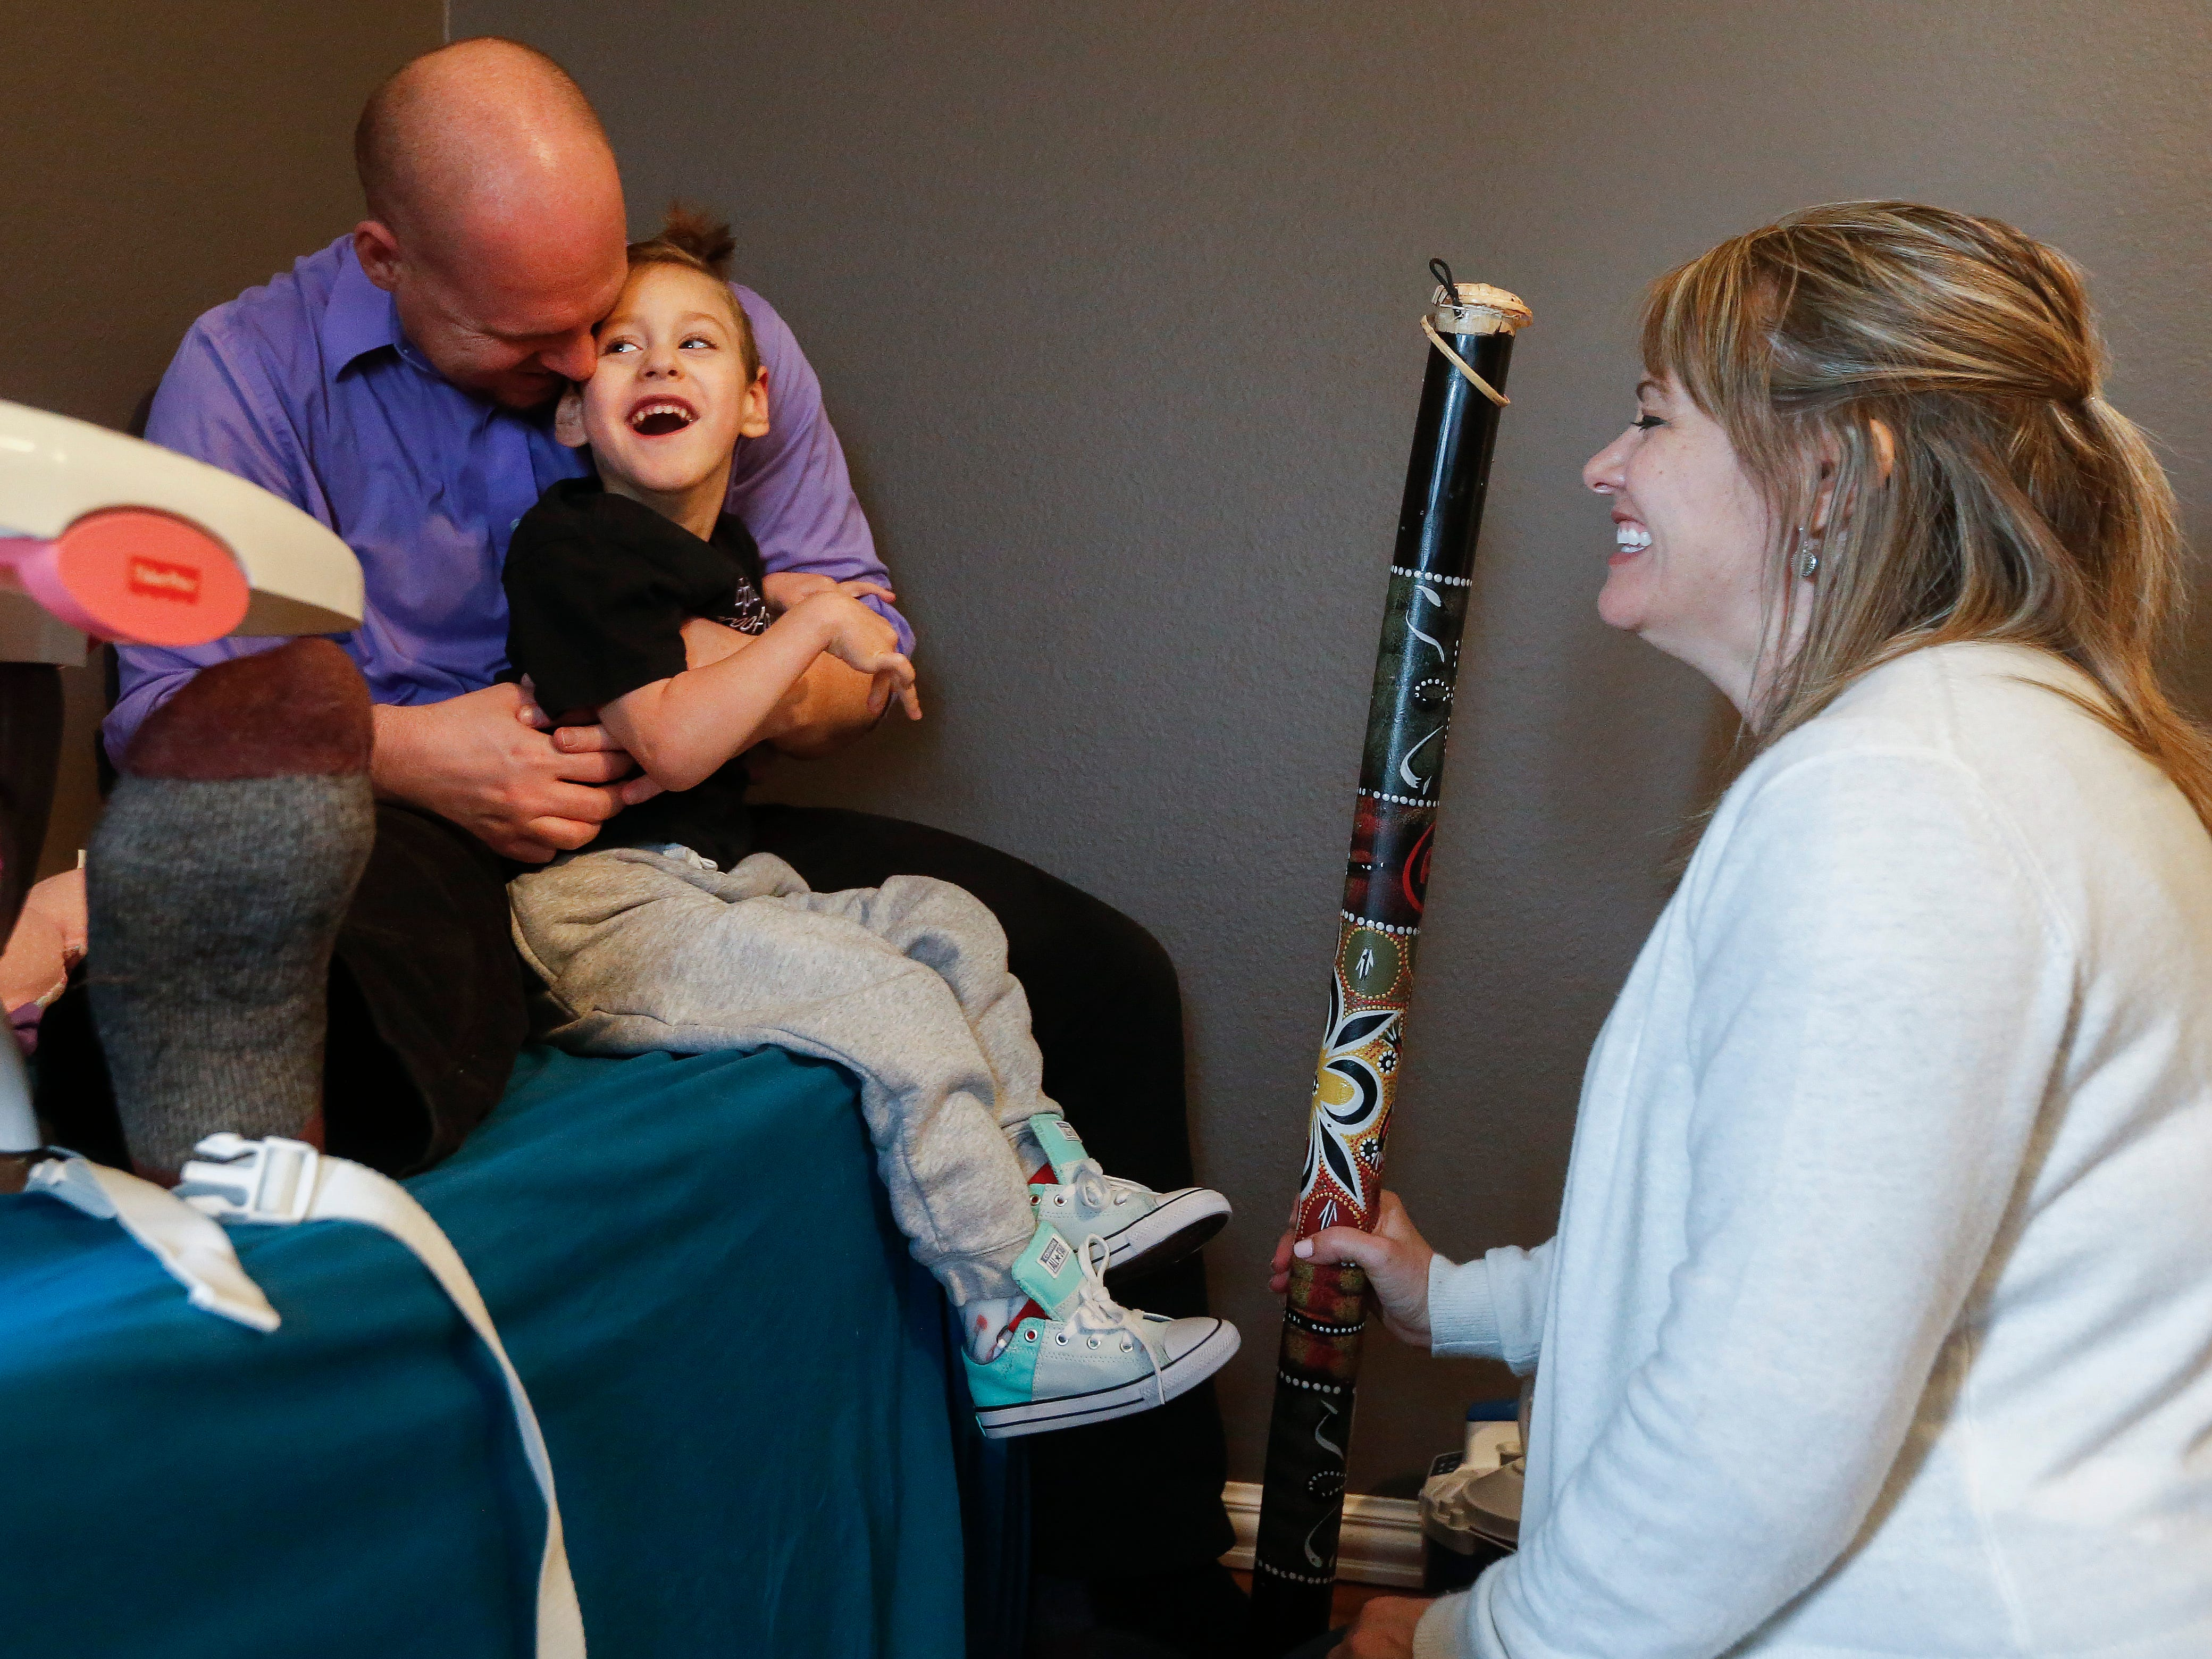 Ayden Markum, 5, laughs with his dad Chris Markum and physical therapy assistant Sara Rozell as the rain stick makes noise at the Markum's home in  Rogersville on Monday, March 26, 2018.